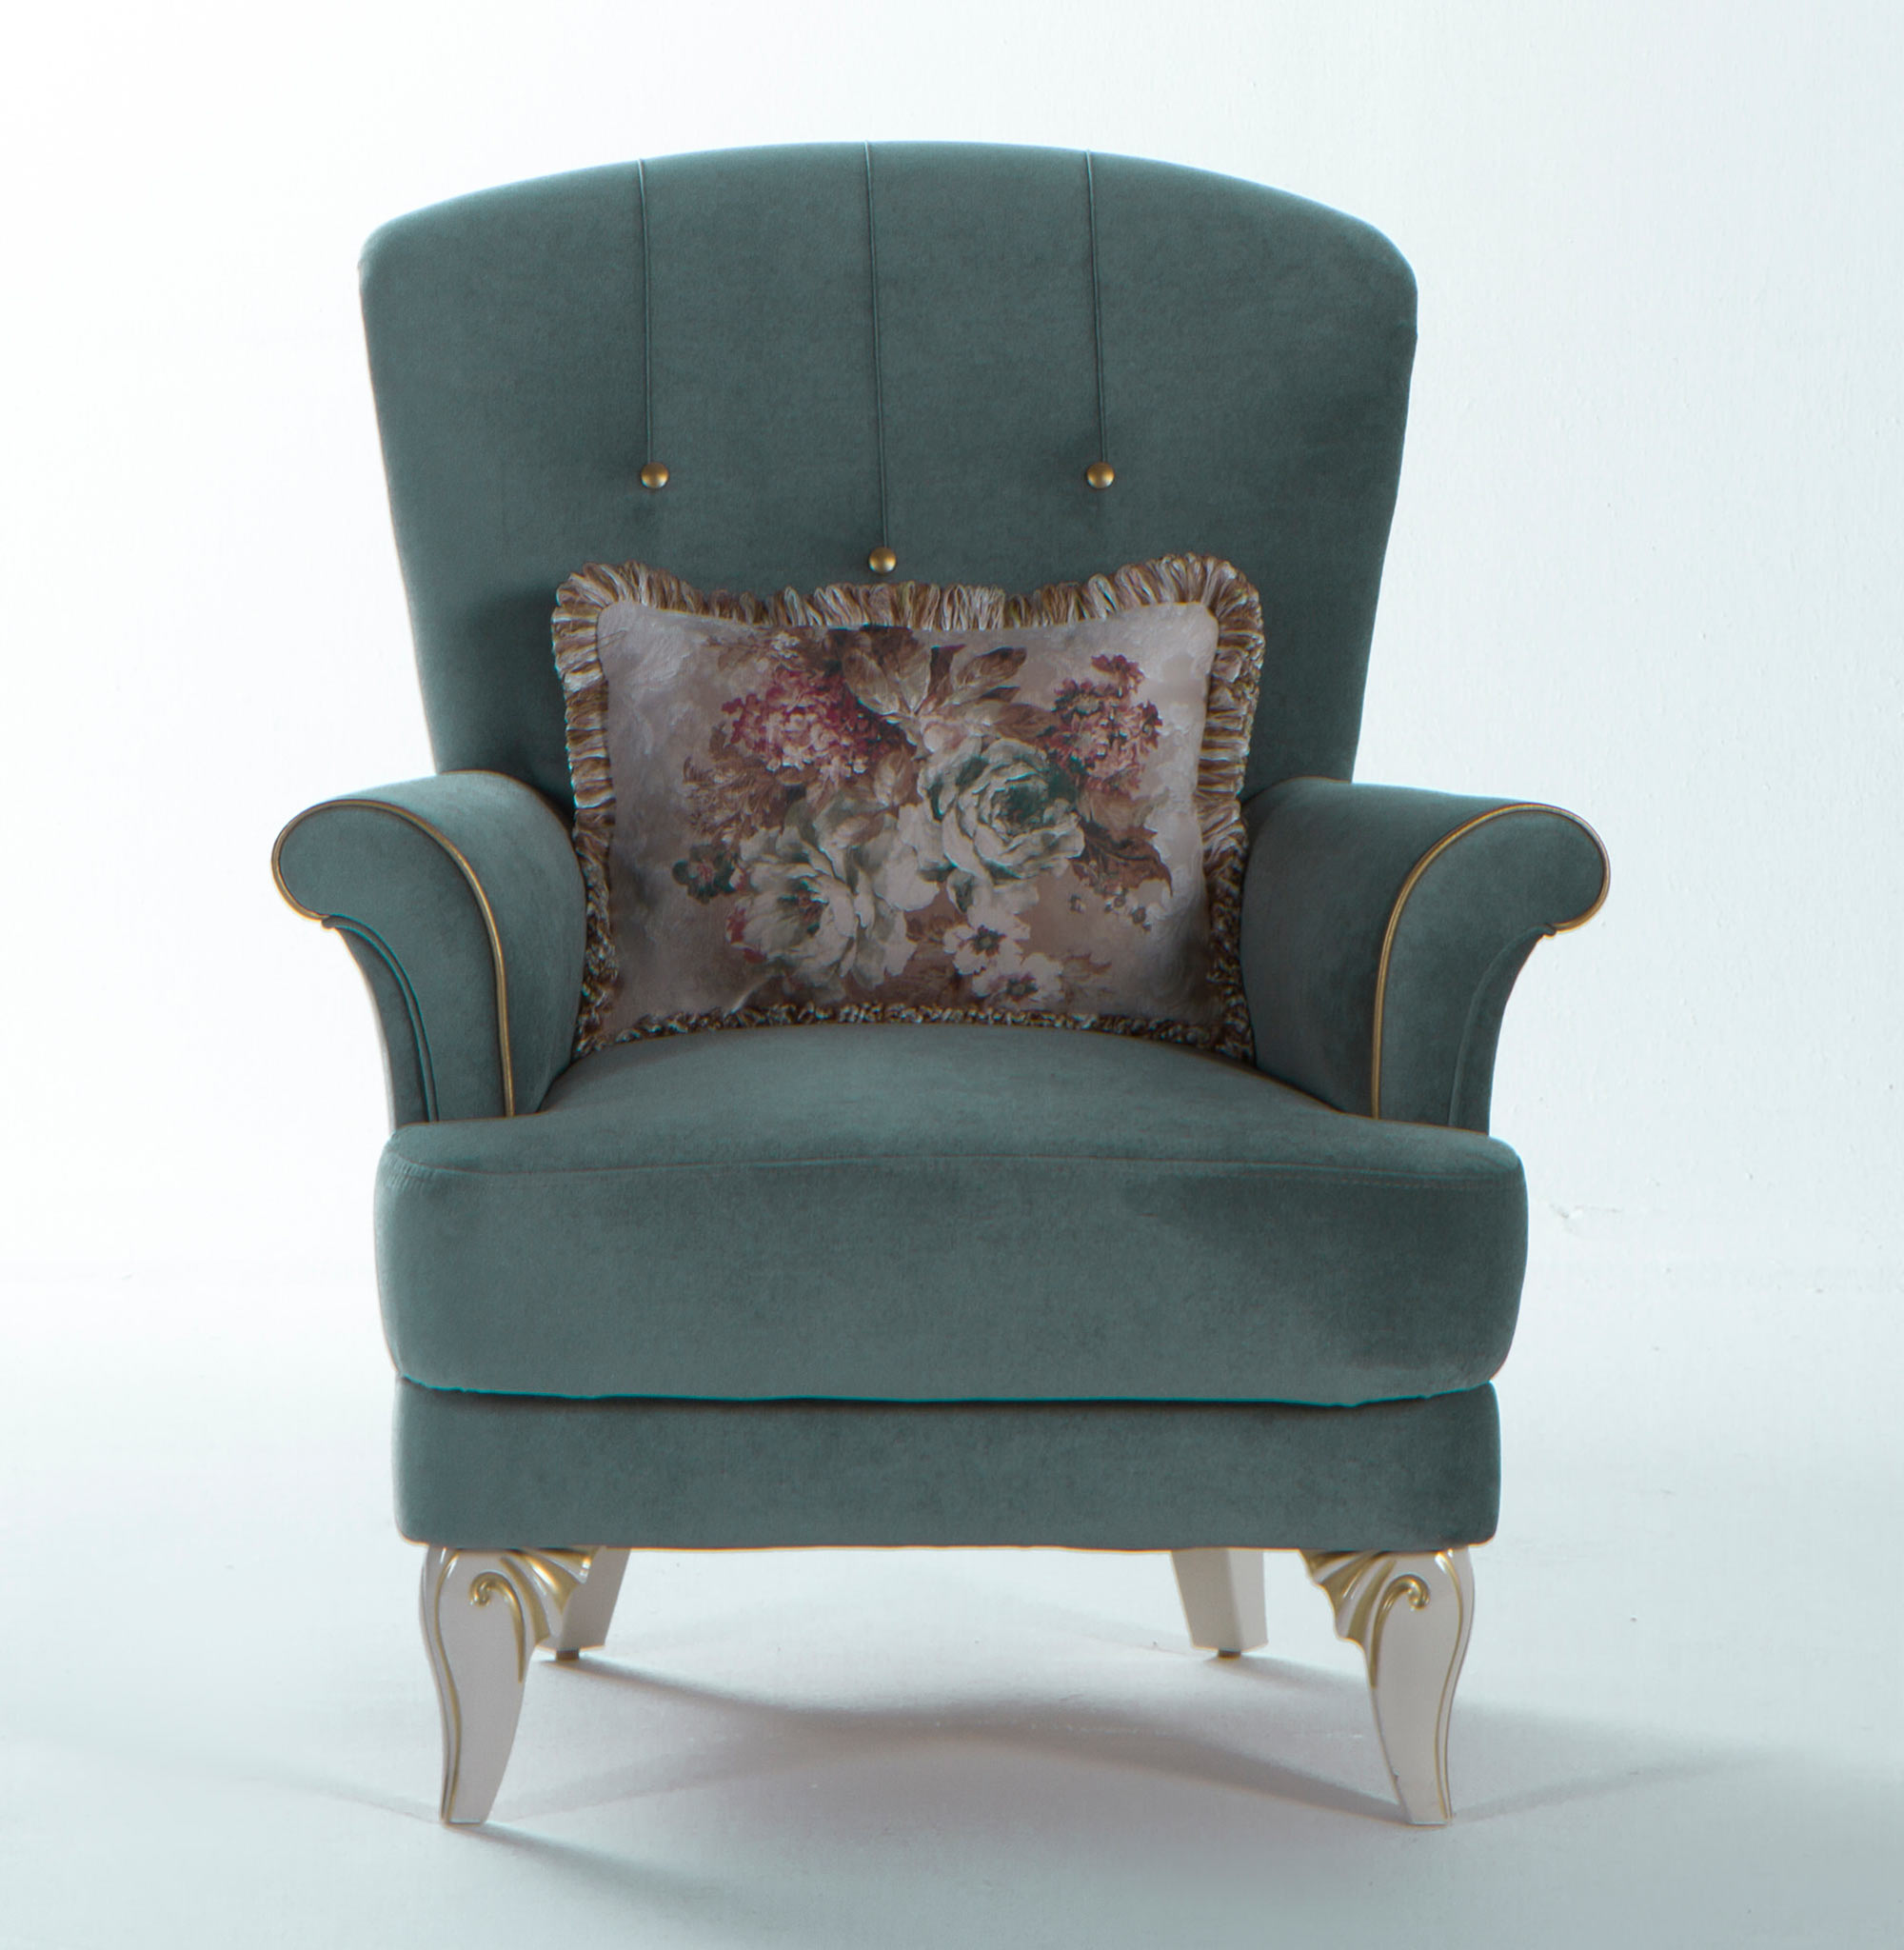 Awesome Astoria Caprice Seafoam Green Chair By Istikbal Furniture Interior Design Ideas Ghosoteloinfo